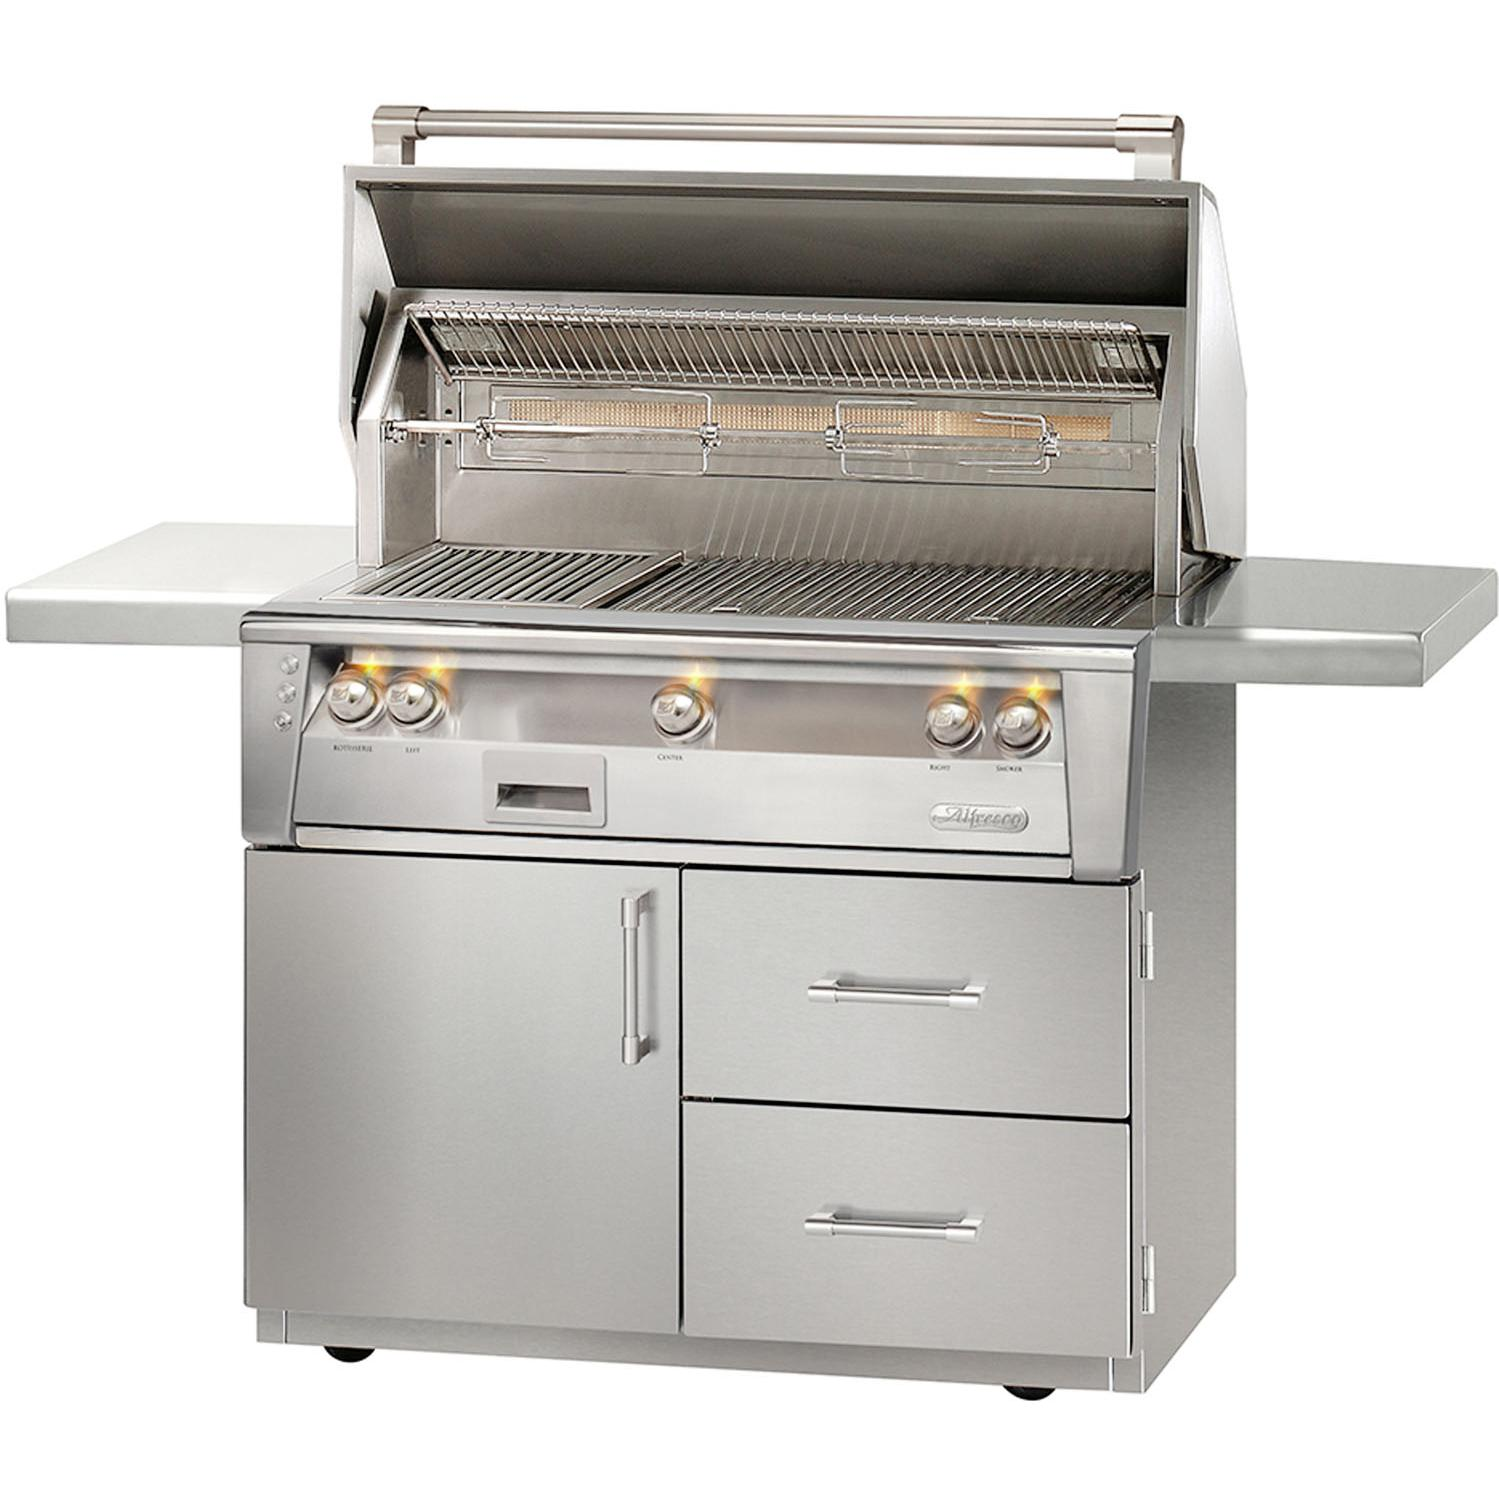 Alfresco LXE 42-Inch Propane Gas Grill On Deluxe Cart With Sear Zone And Rotisserie - ALXE-42SZCD-LP 2911906